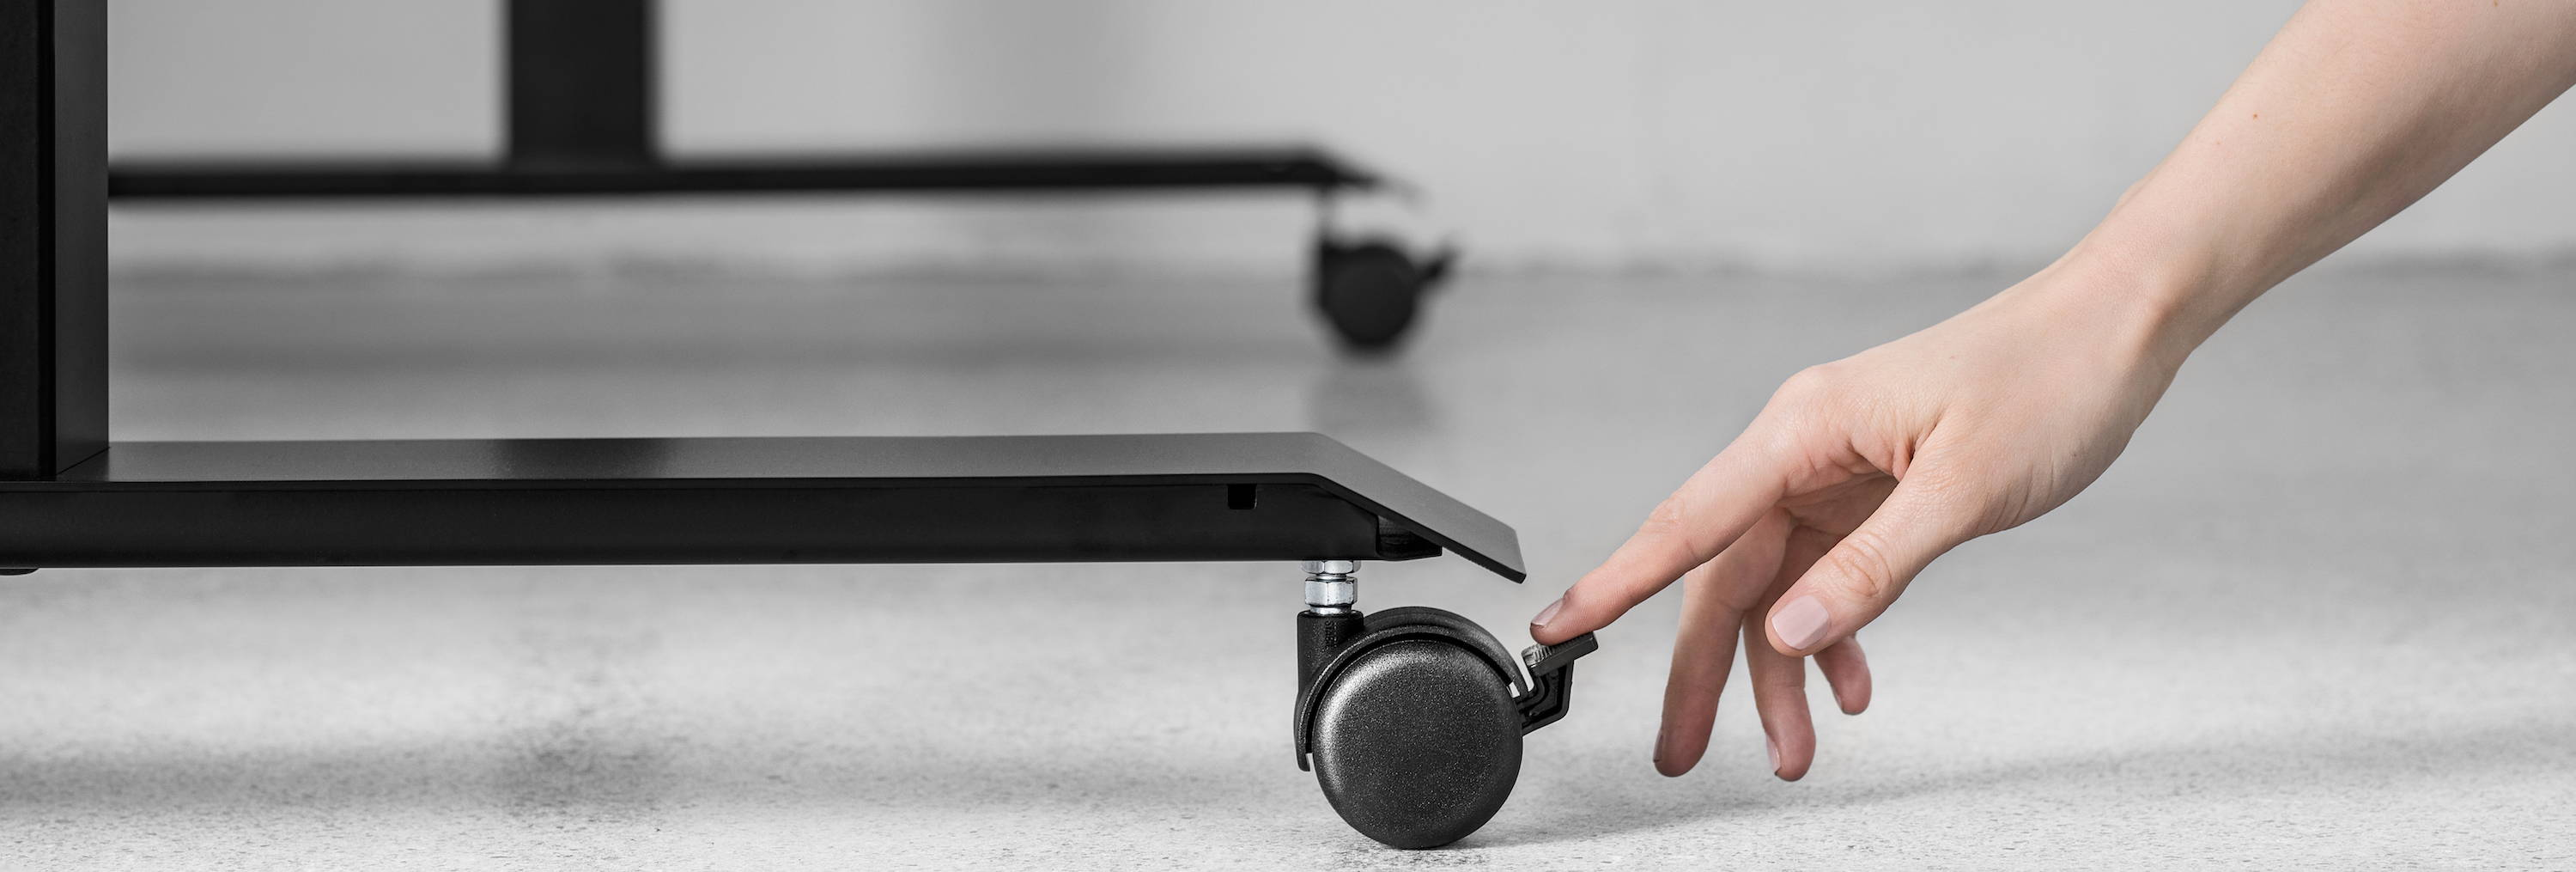 Casters - ergonofis sit-stand desk